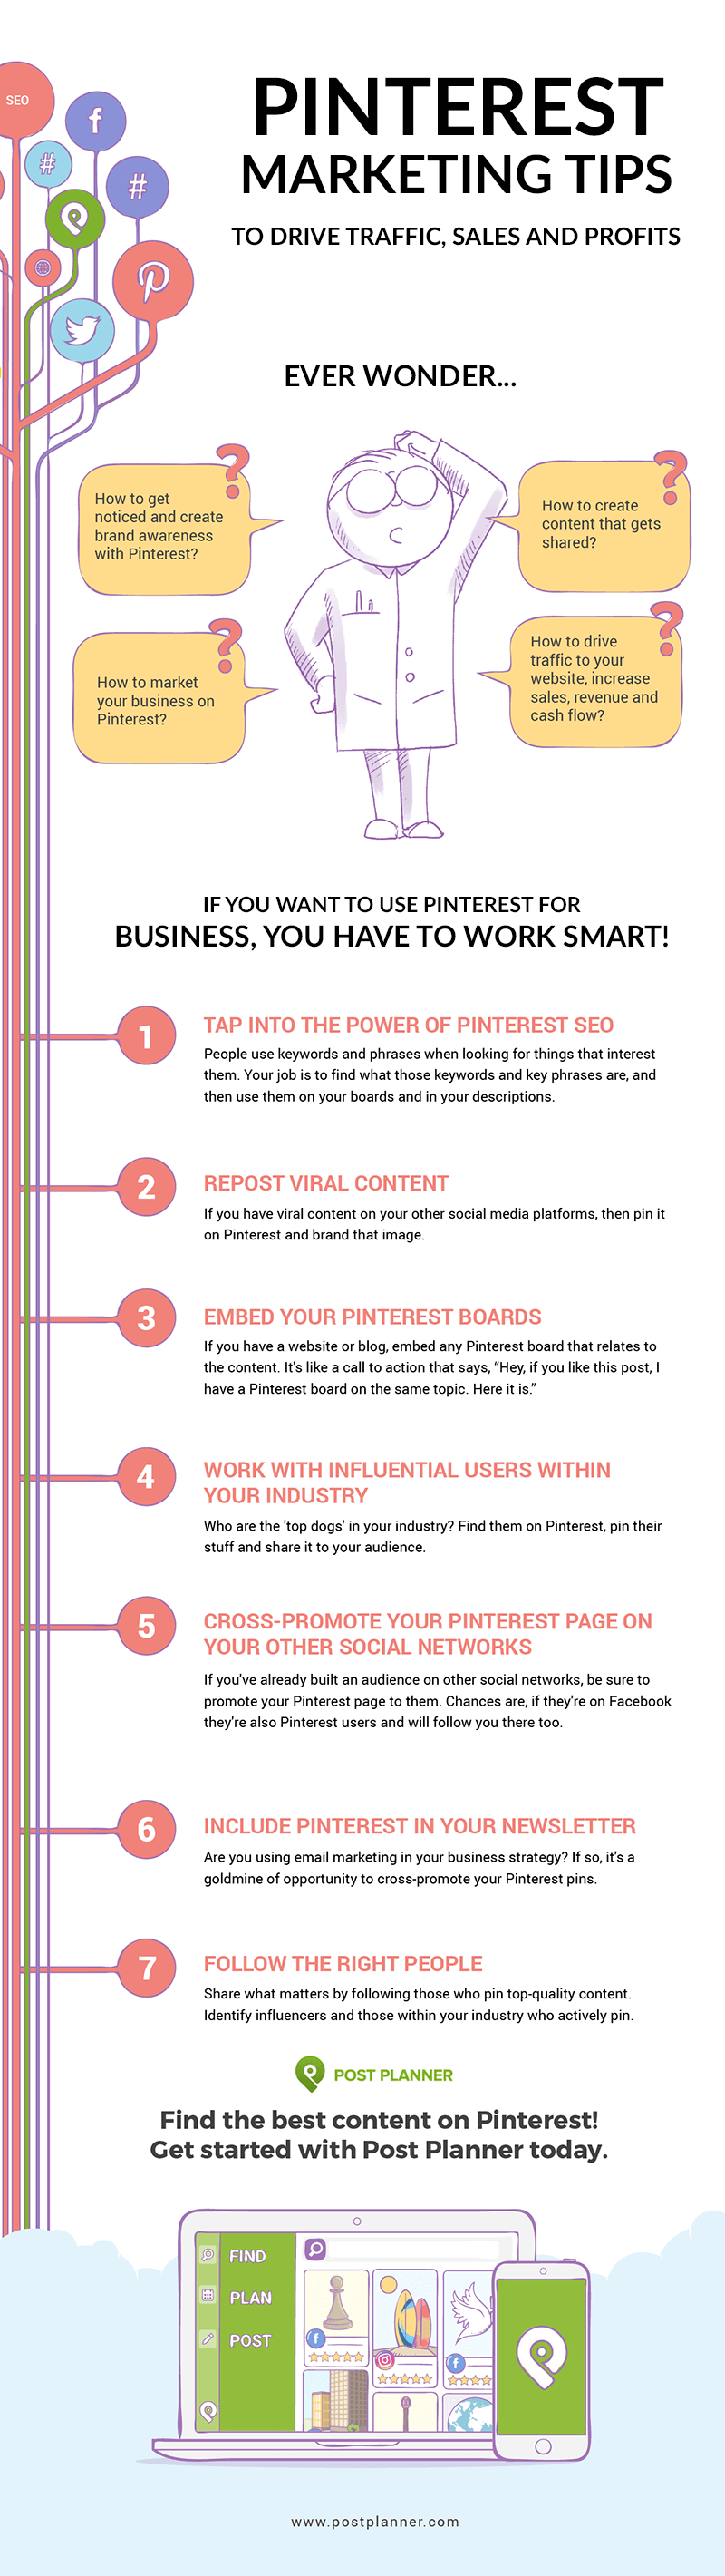 Pinterest Hacks to Drive Traffic, Sales and Profits infographic-01 (1)